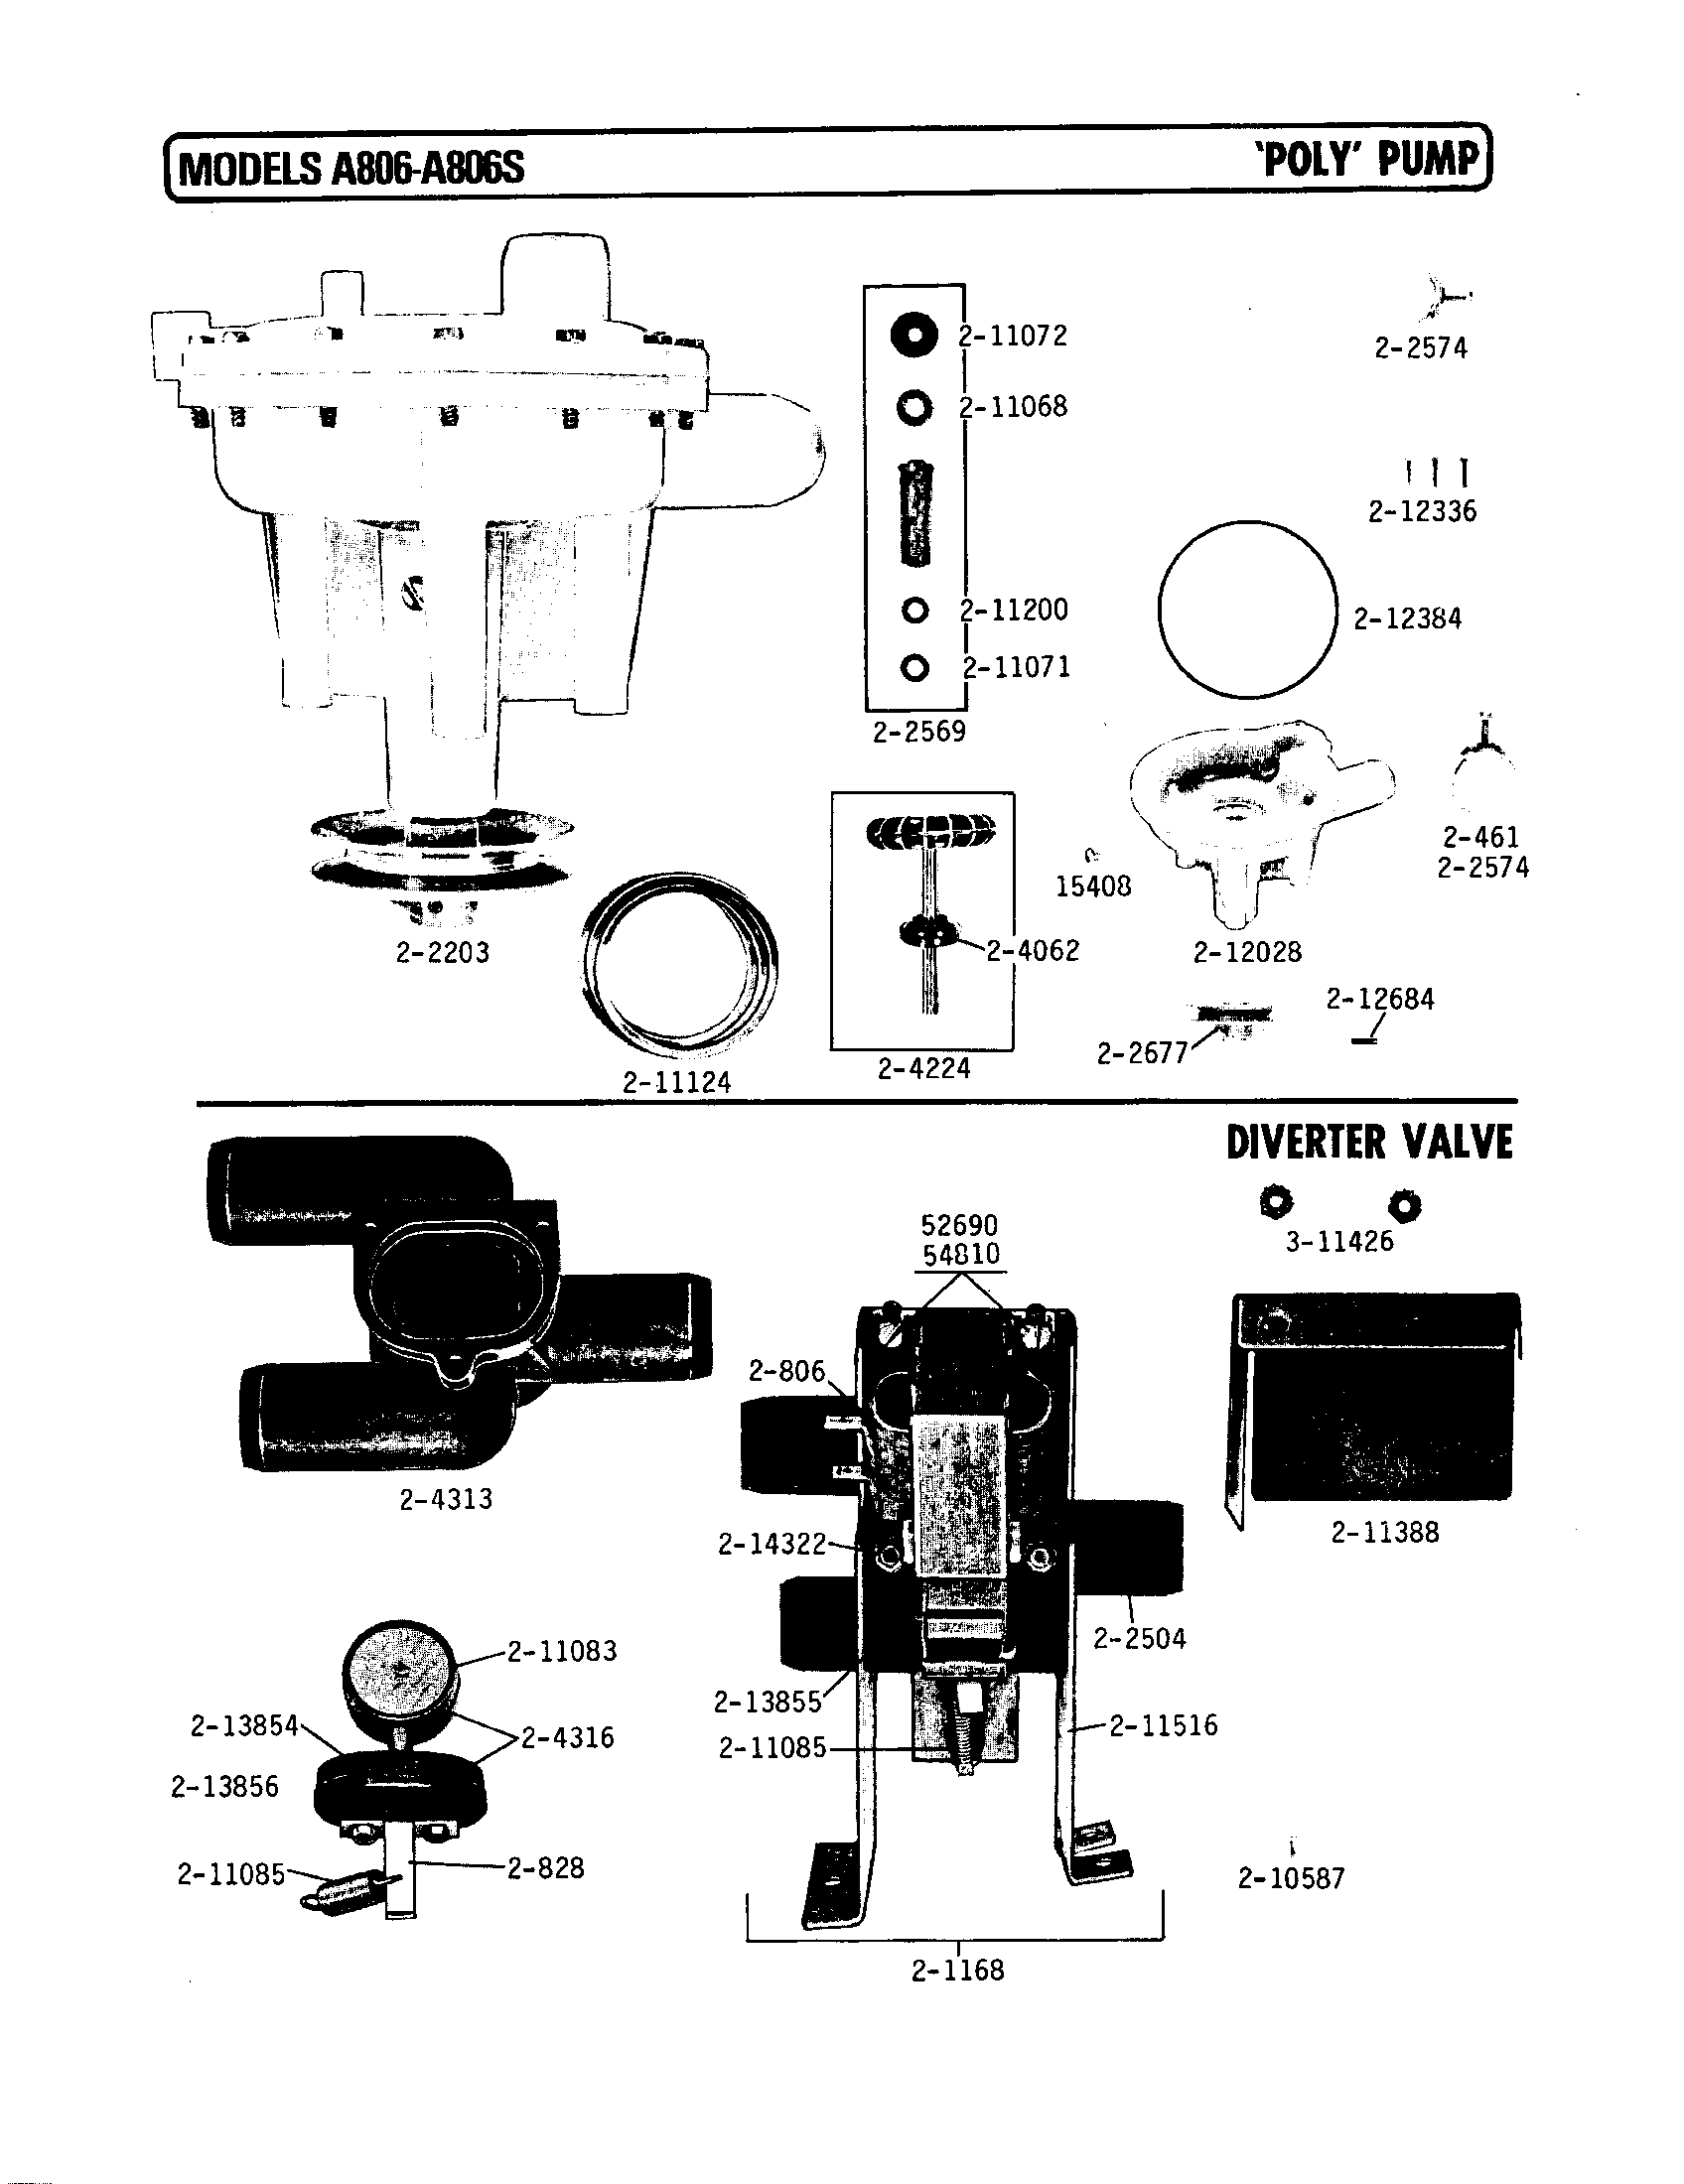 Maytag A806 Timer Stove Clocks And Appliance Timers Electronic Circuit For Washing Machine Washer Poly Pump Parts Diagram